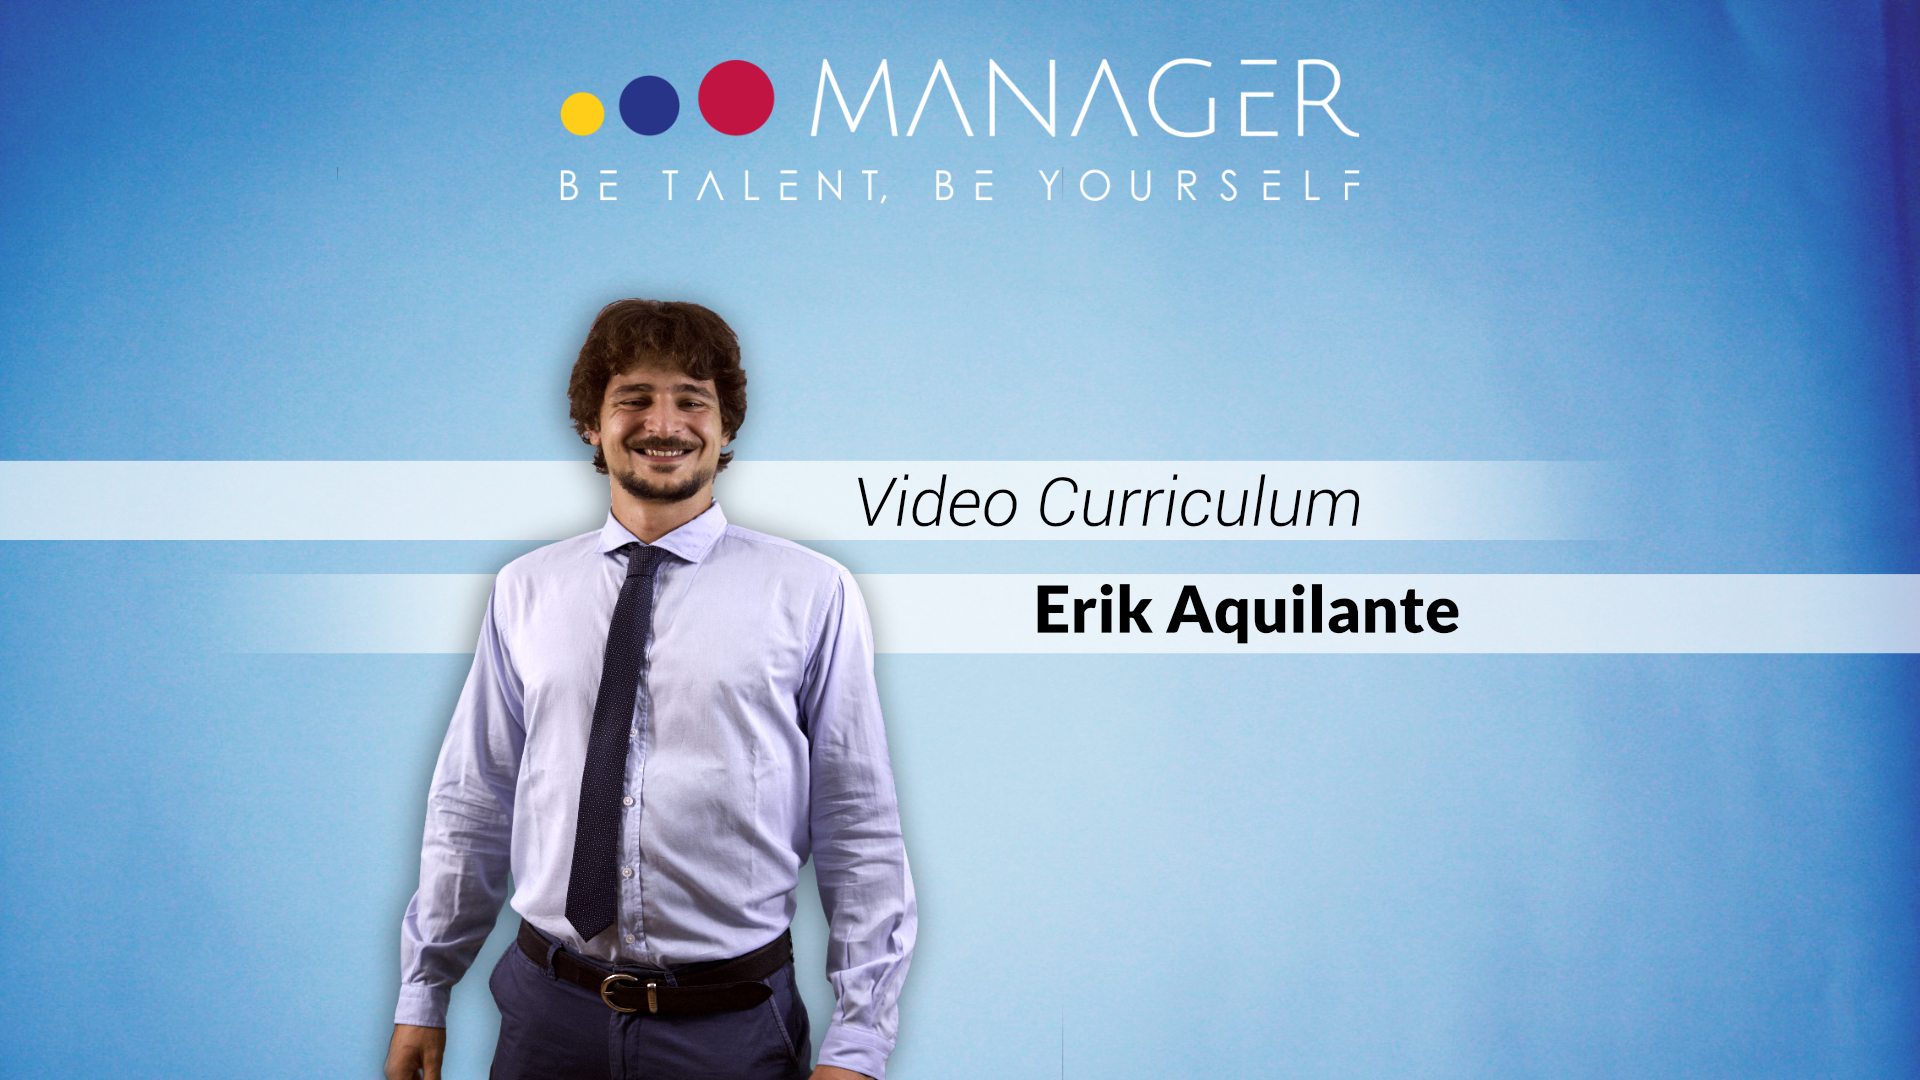 Video Curriculum di Erik Aquilante